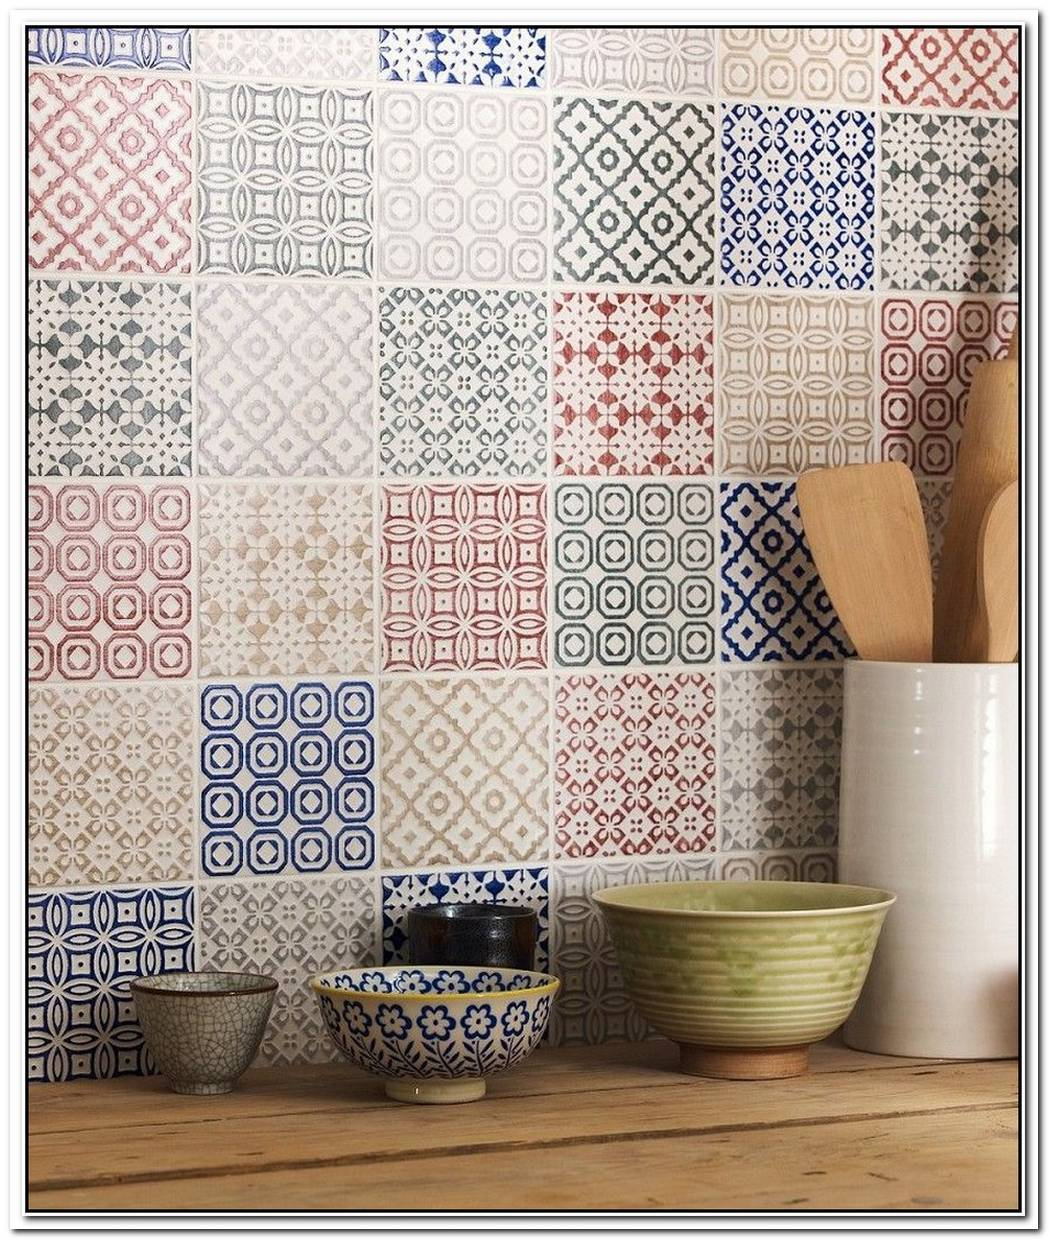 Mix And Match Patterned Tiles For A Unique D%C3%A9cor